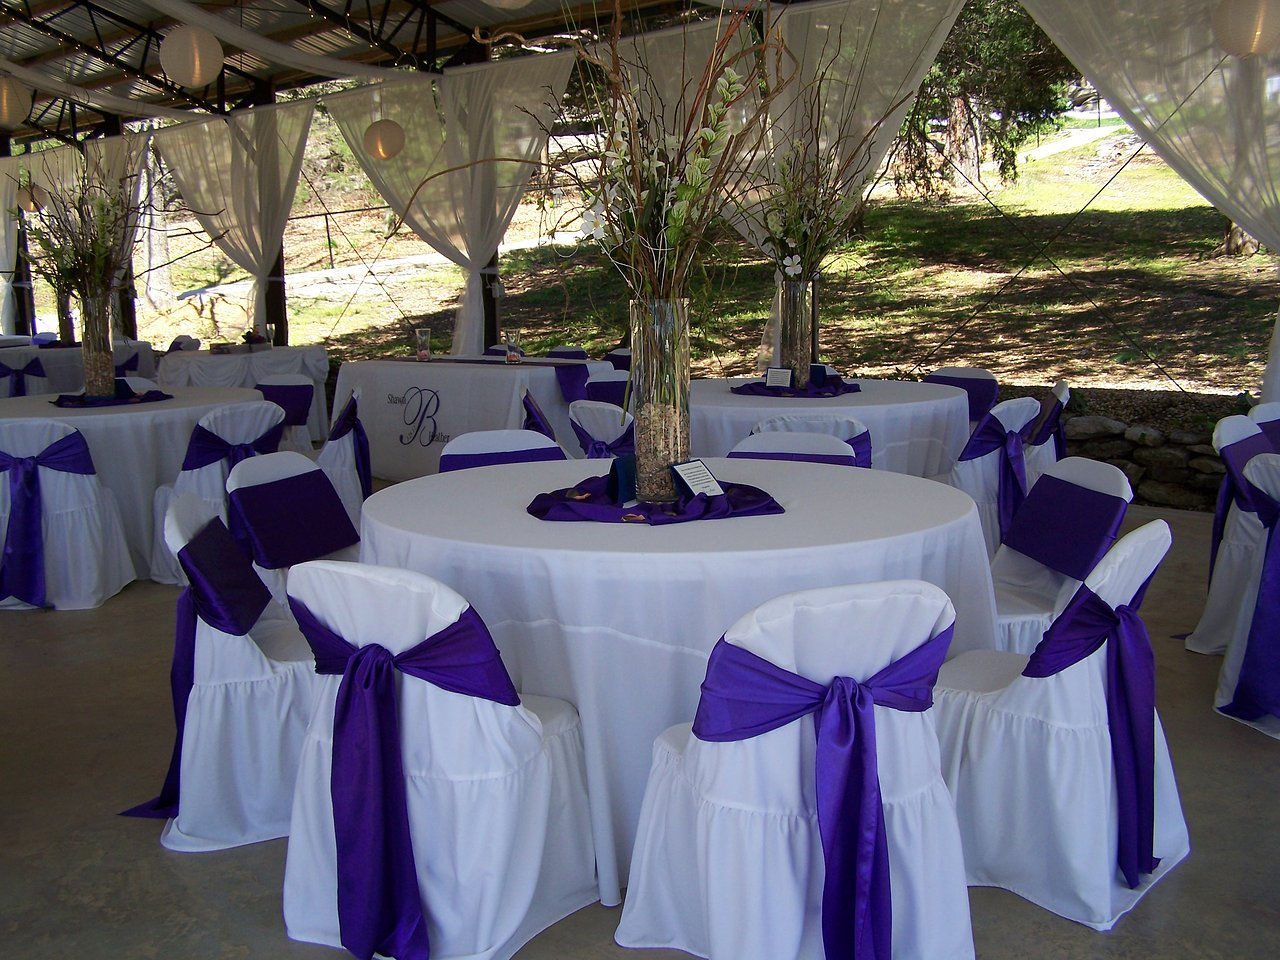 The Great Cover Wedding and Formal Event Decor Northwest